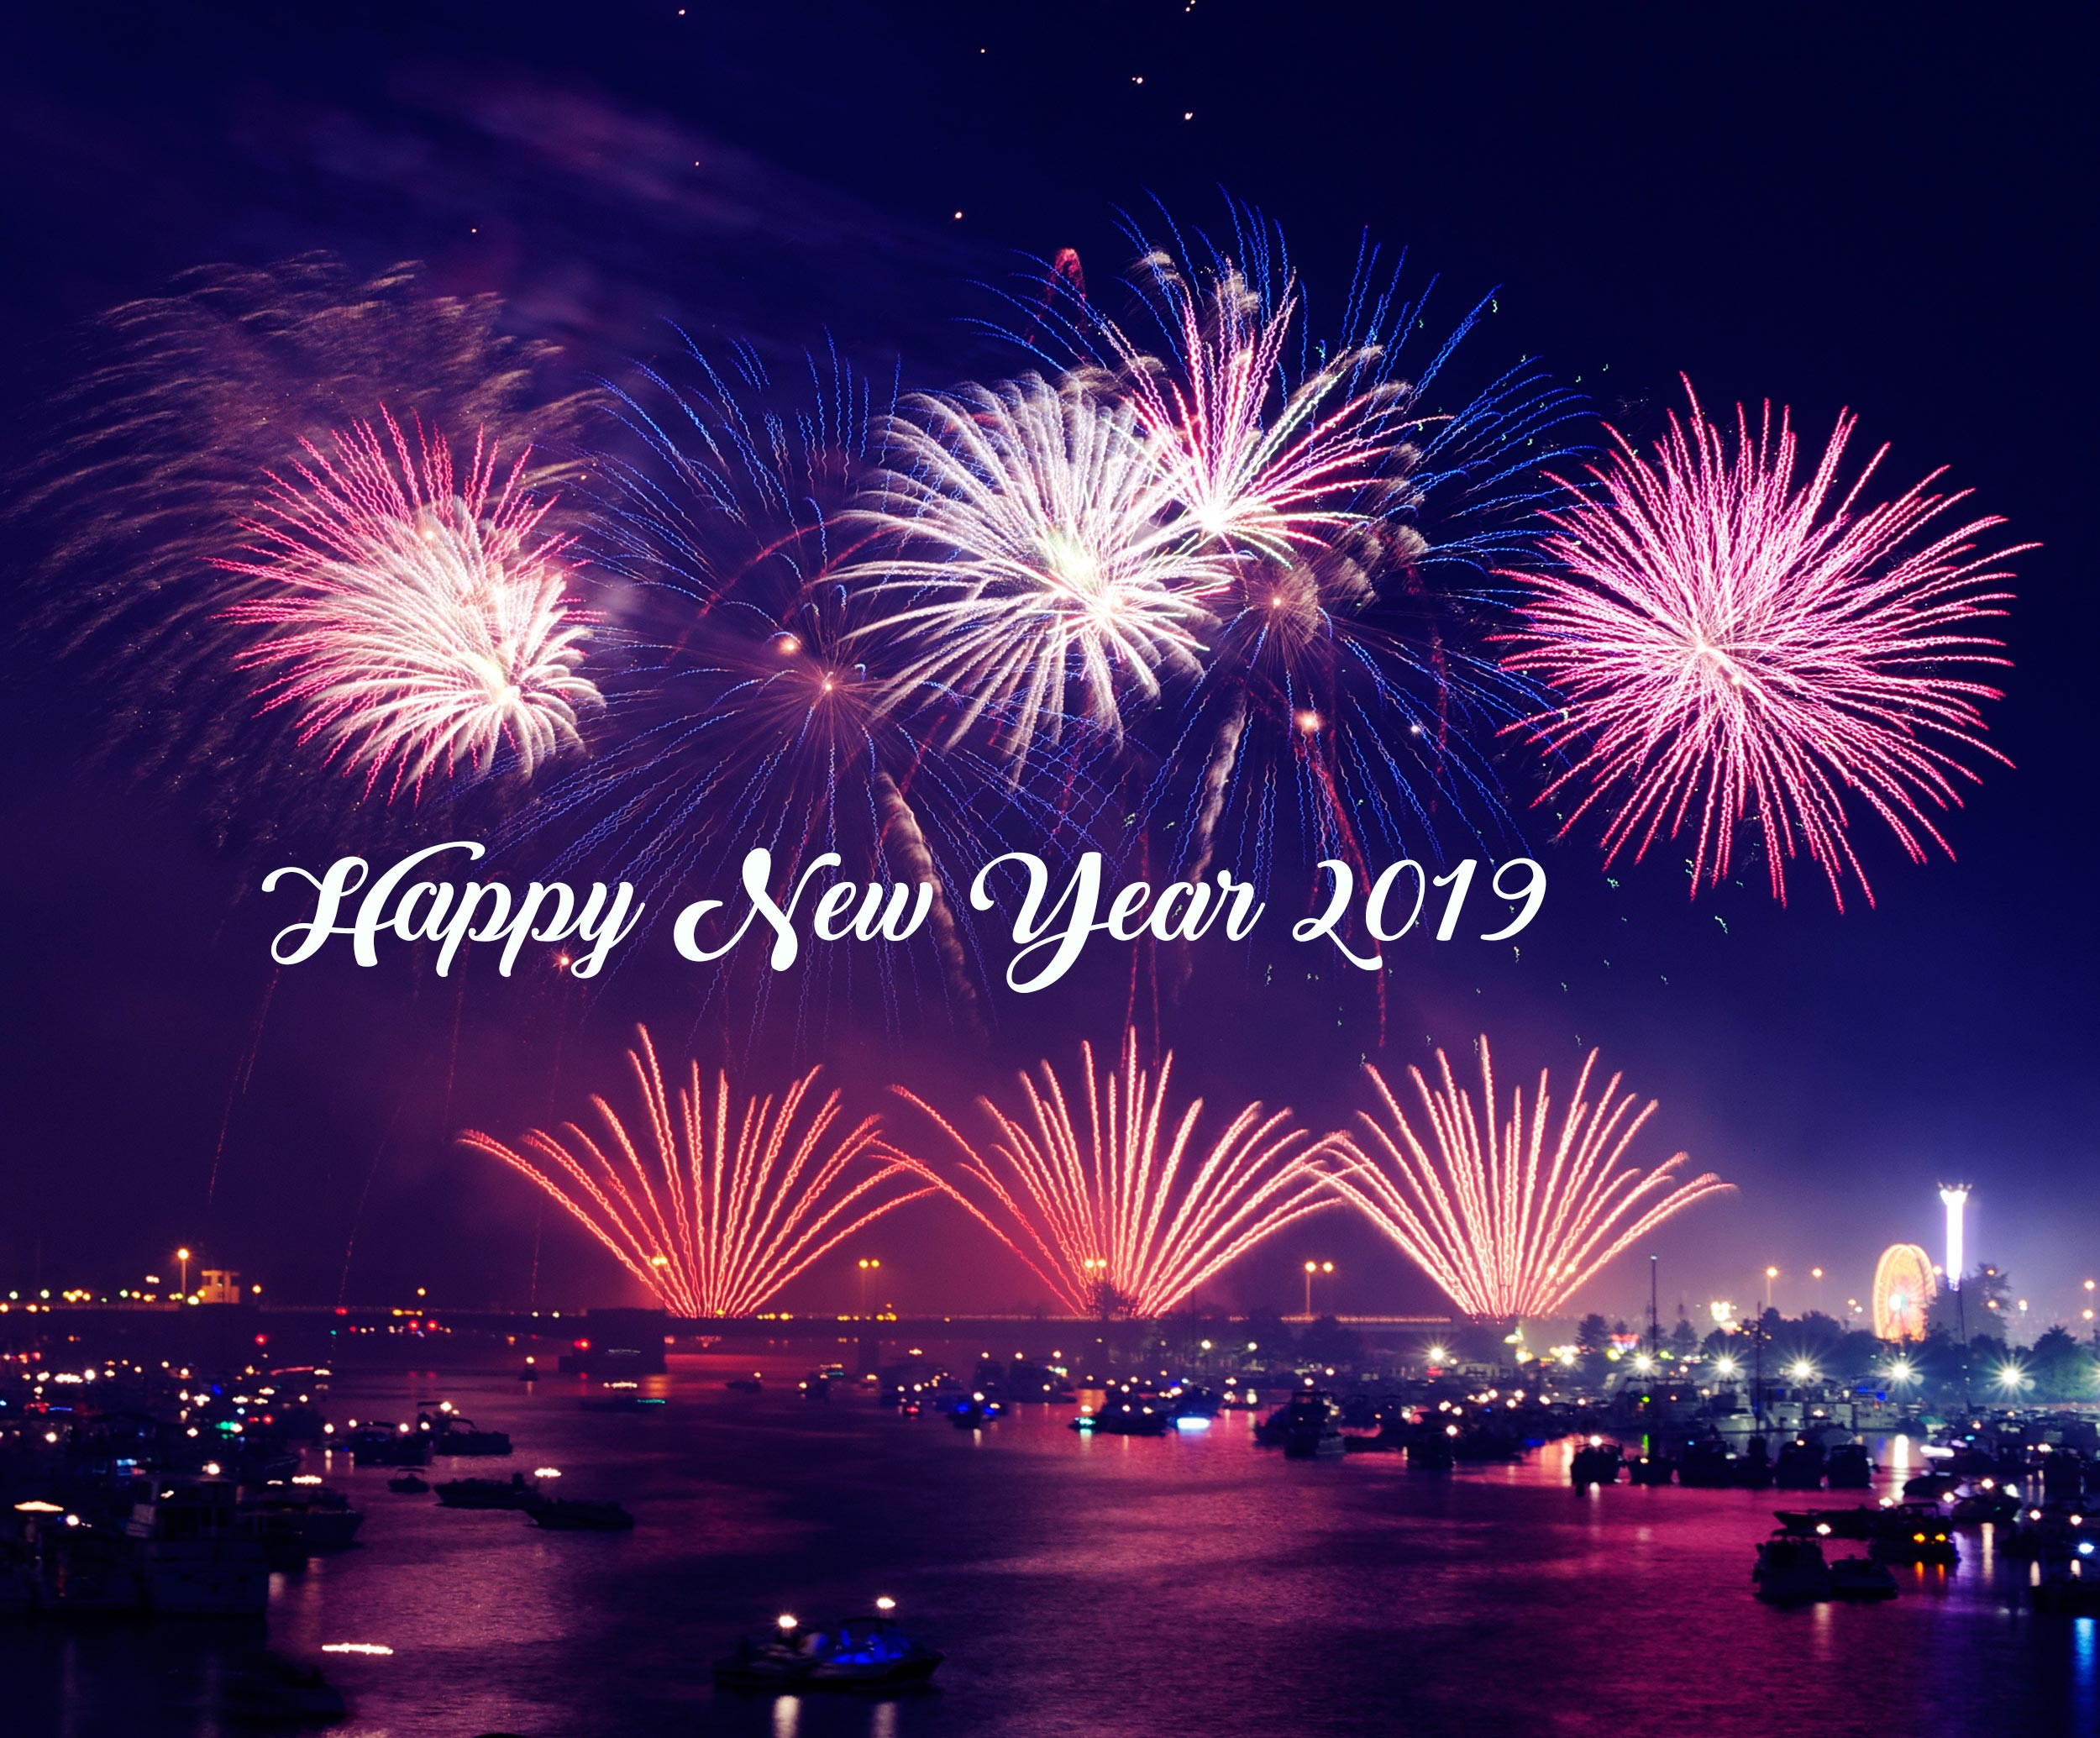 New Year 2019 Hd Wallpaper Background Image 2500x2069